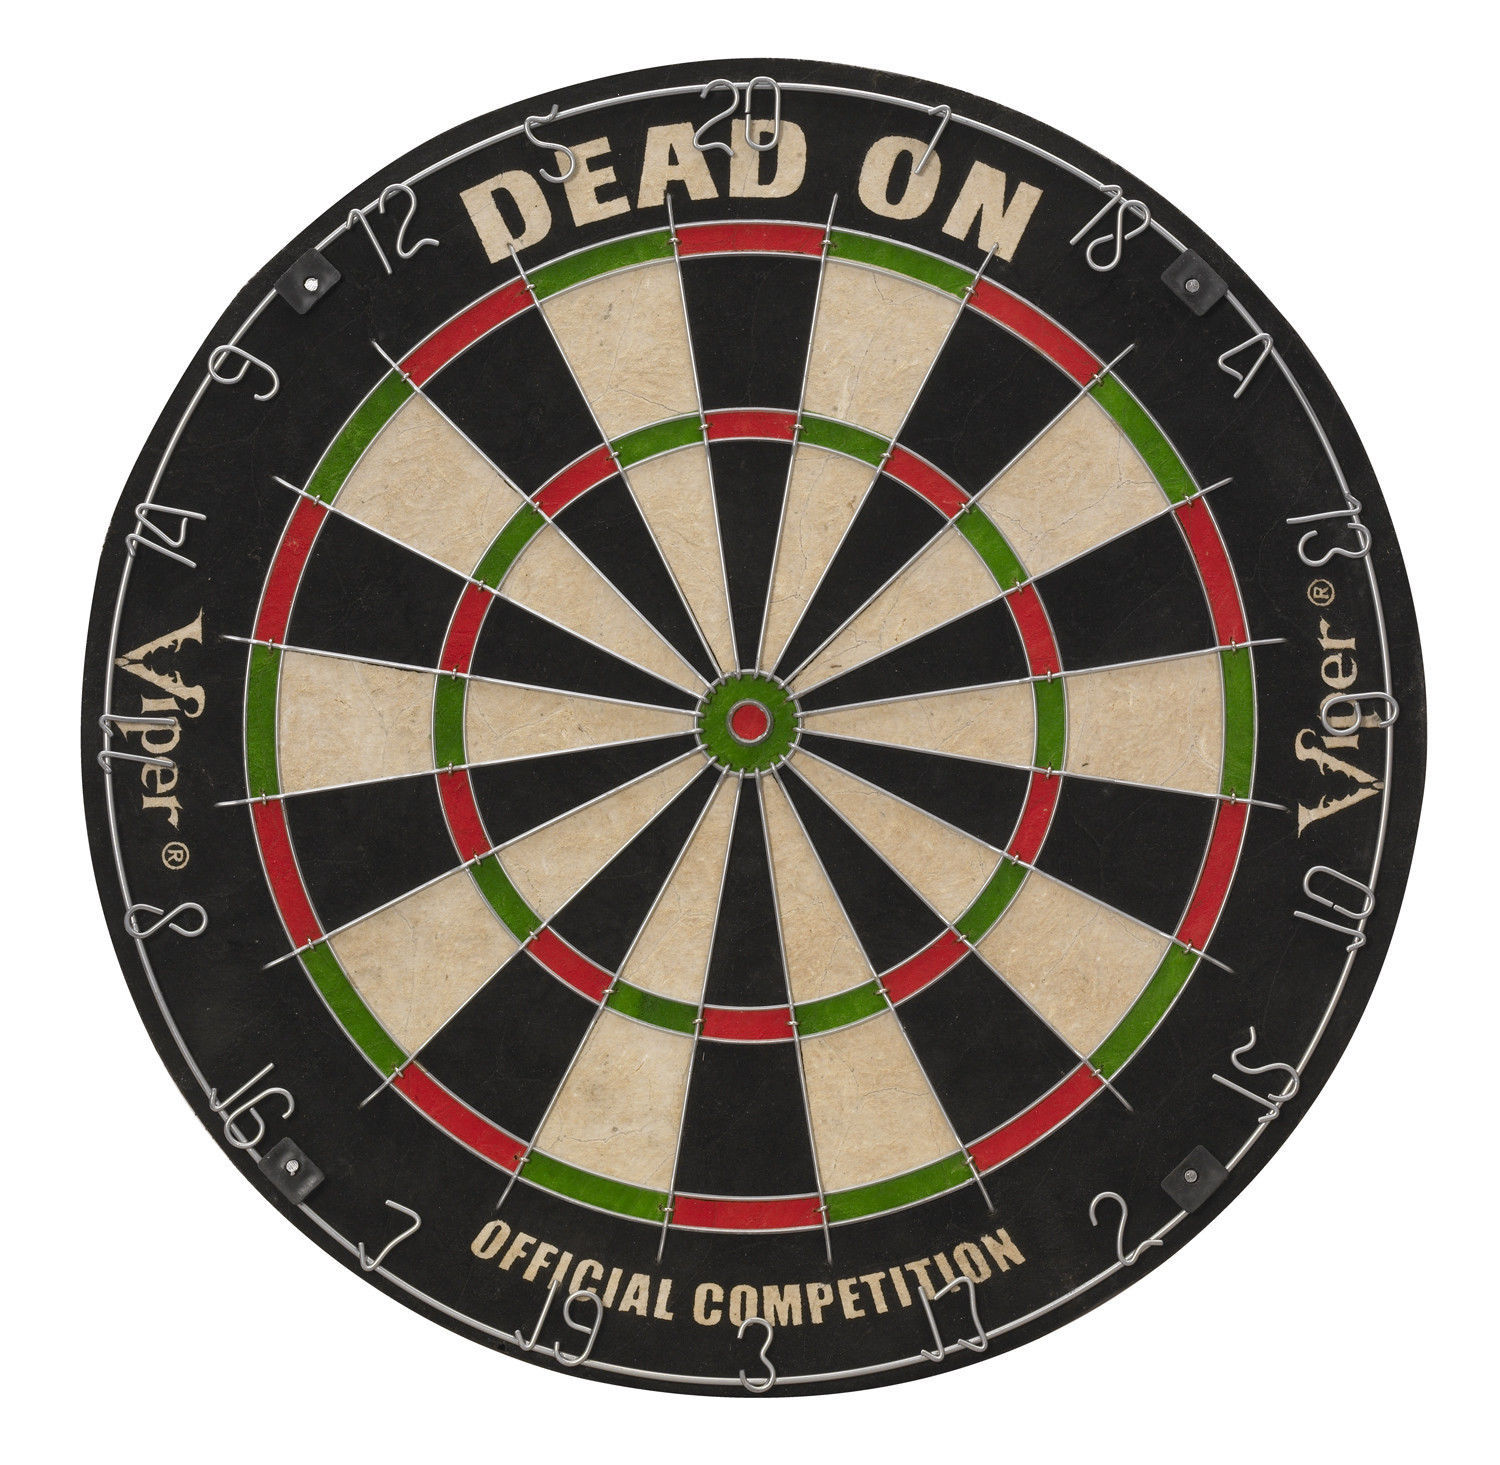 Viper Dead On Steel Tip Dartboard 42-6004  darts flights tips